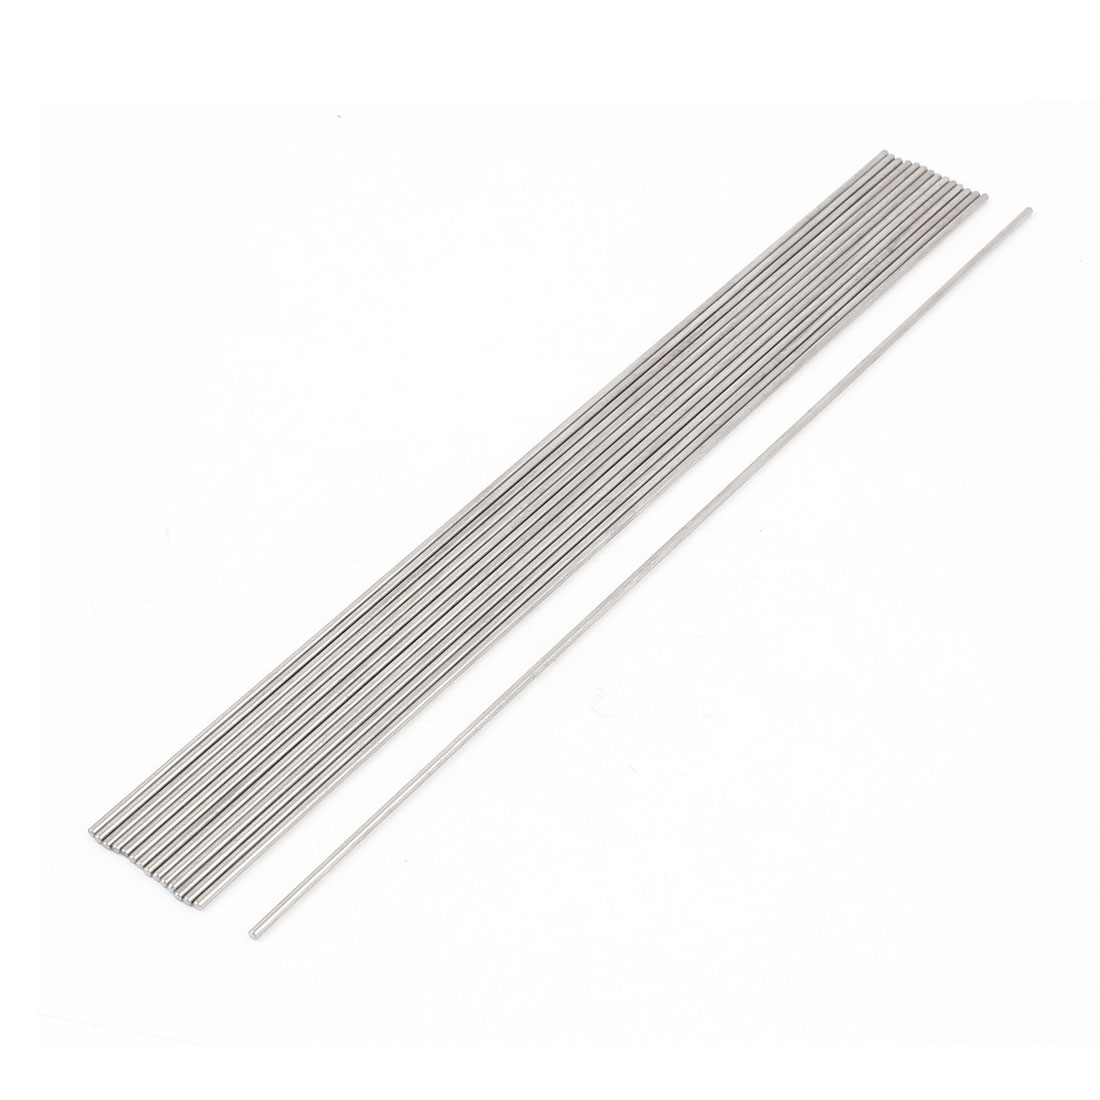 15 Pcs 2mm Dia 150mm Length Stainless Steel Solid Round Rod Bar for DIY RC Model Airplane